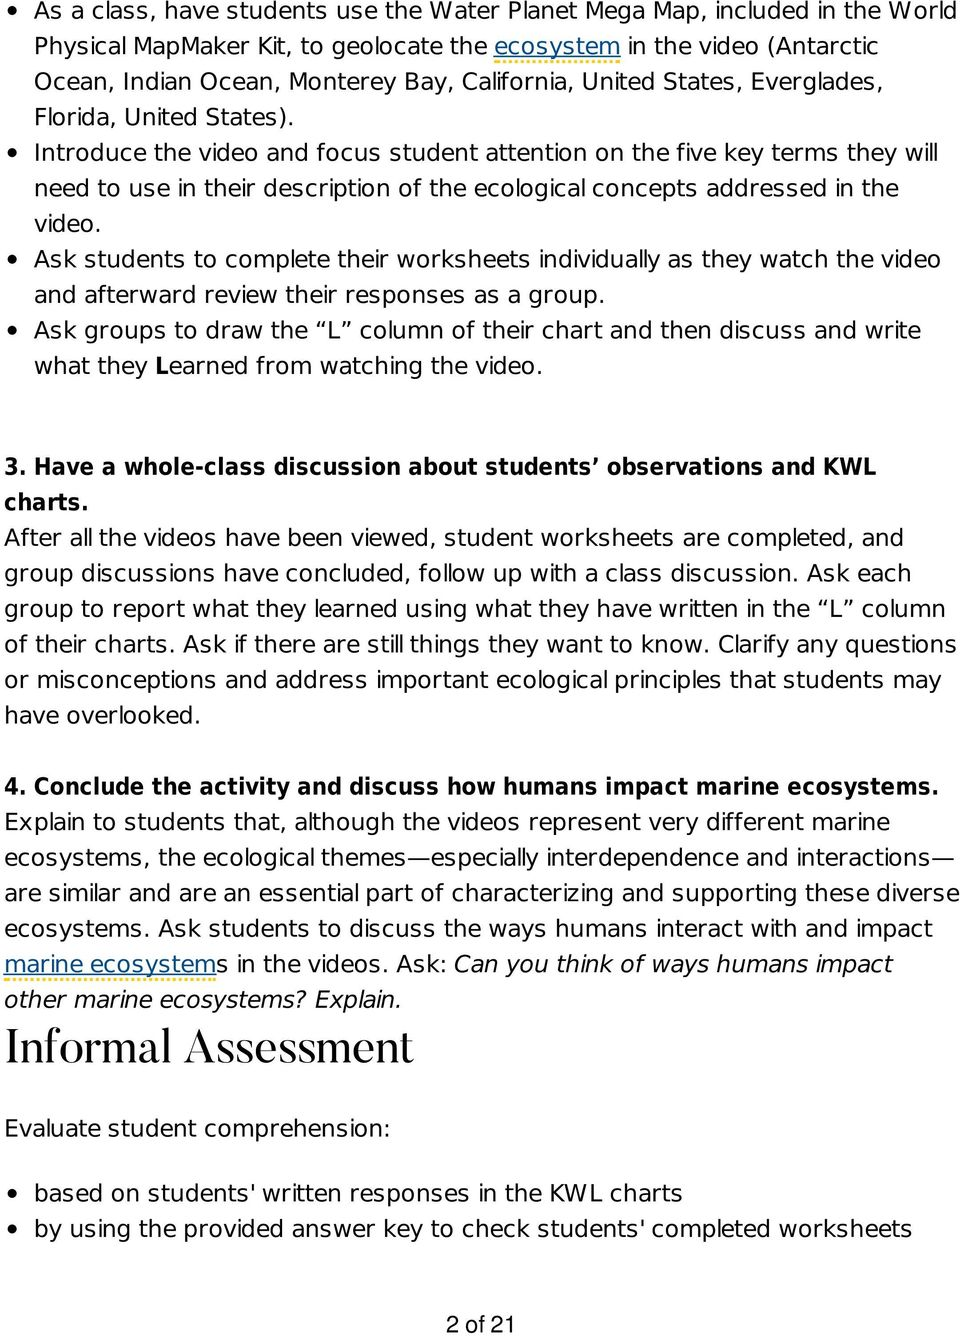 Introduce the video and focus student attention on the five key terms they will need to use in their description of the ecological concepts addressed in the video.